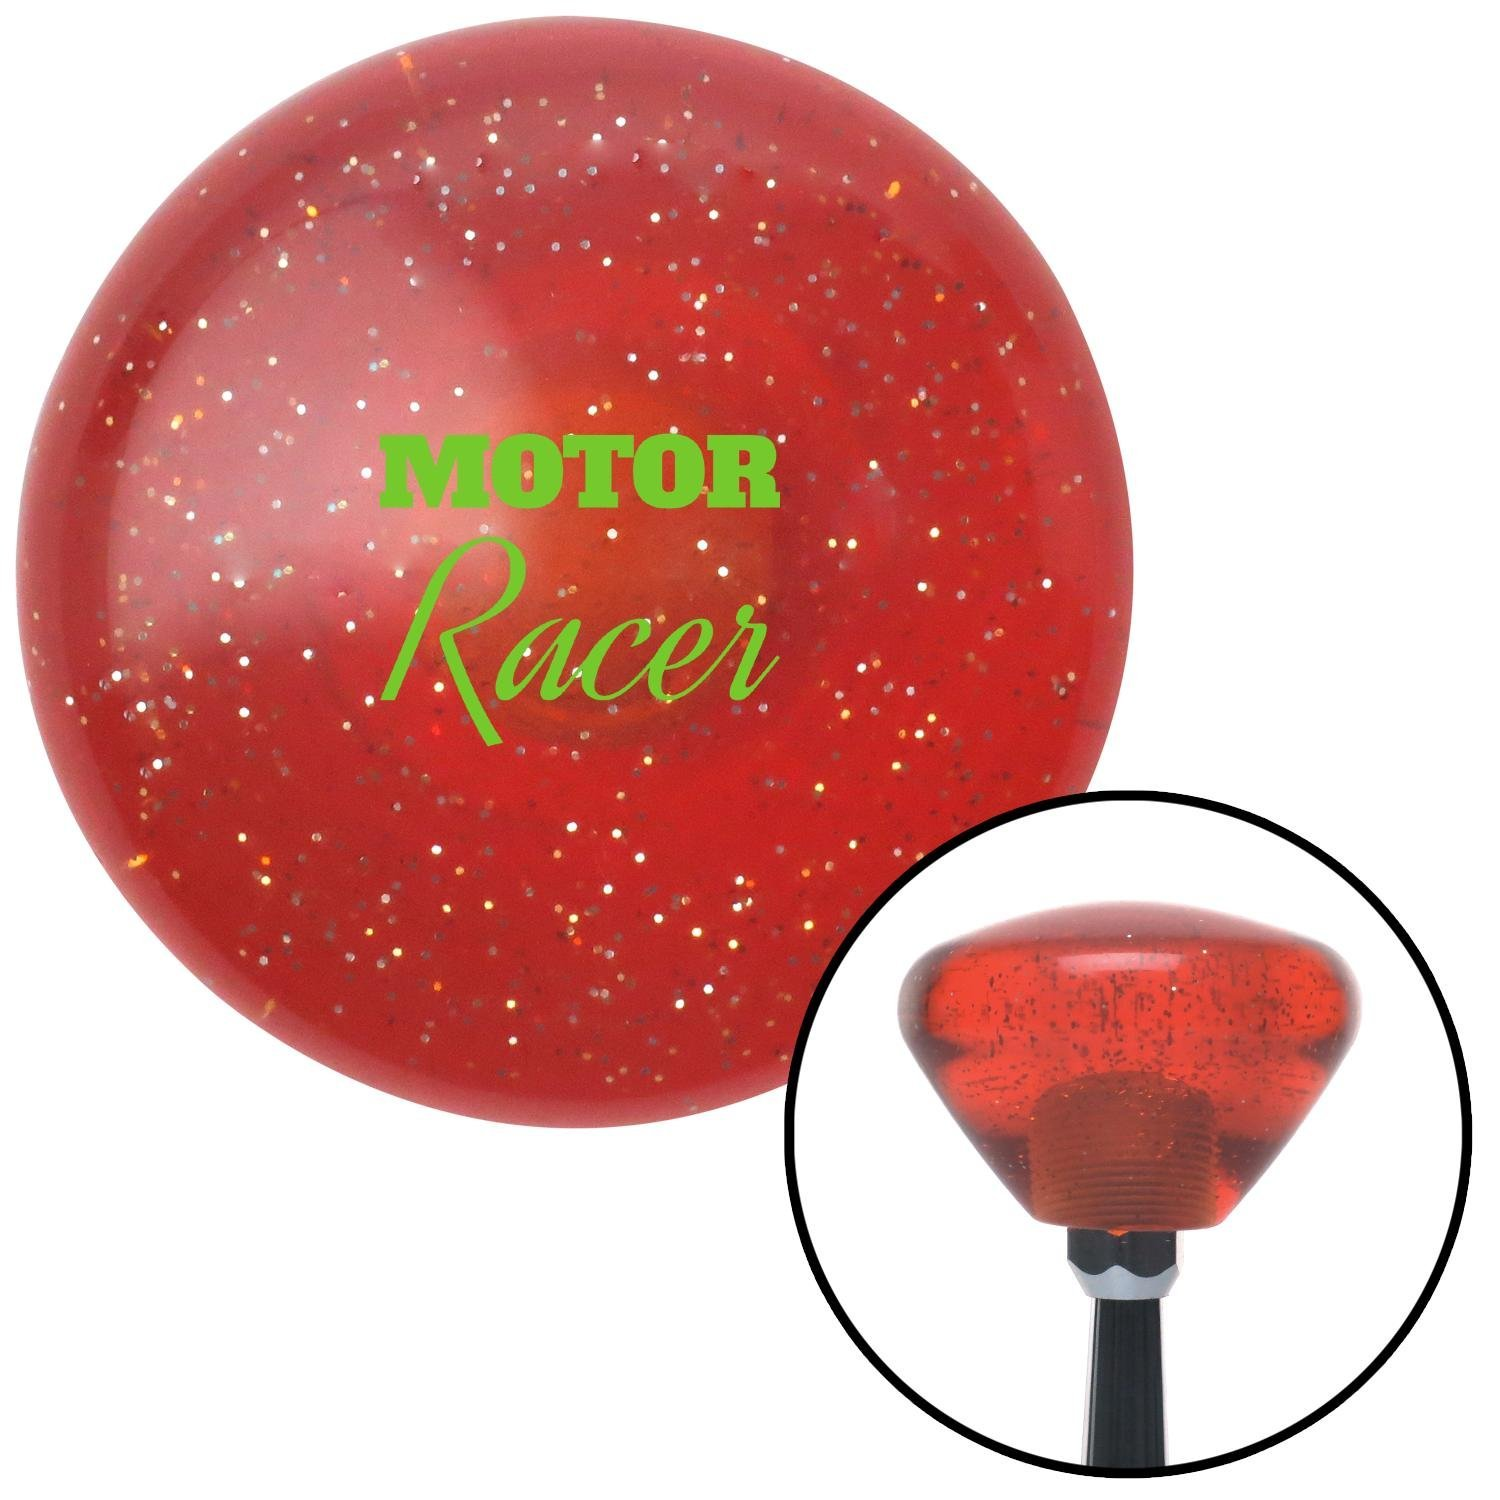 American Shifter 289016 Shift Knob Green Motor Racer Orange Retro Metal Flake with M16 x 1.5 Insert